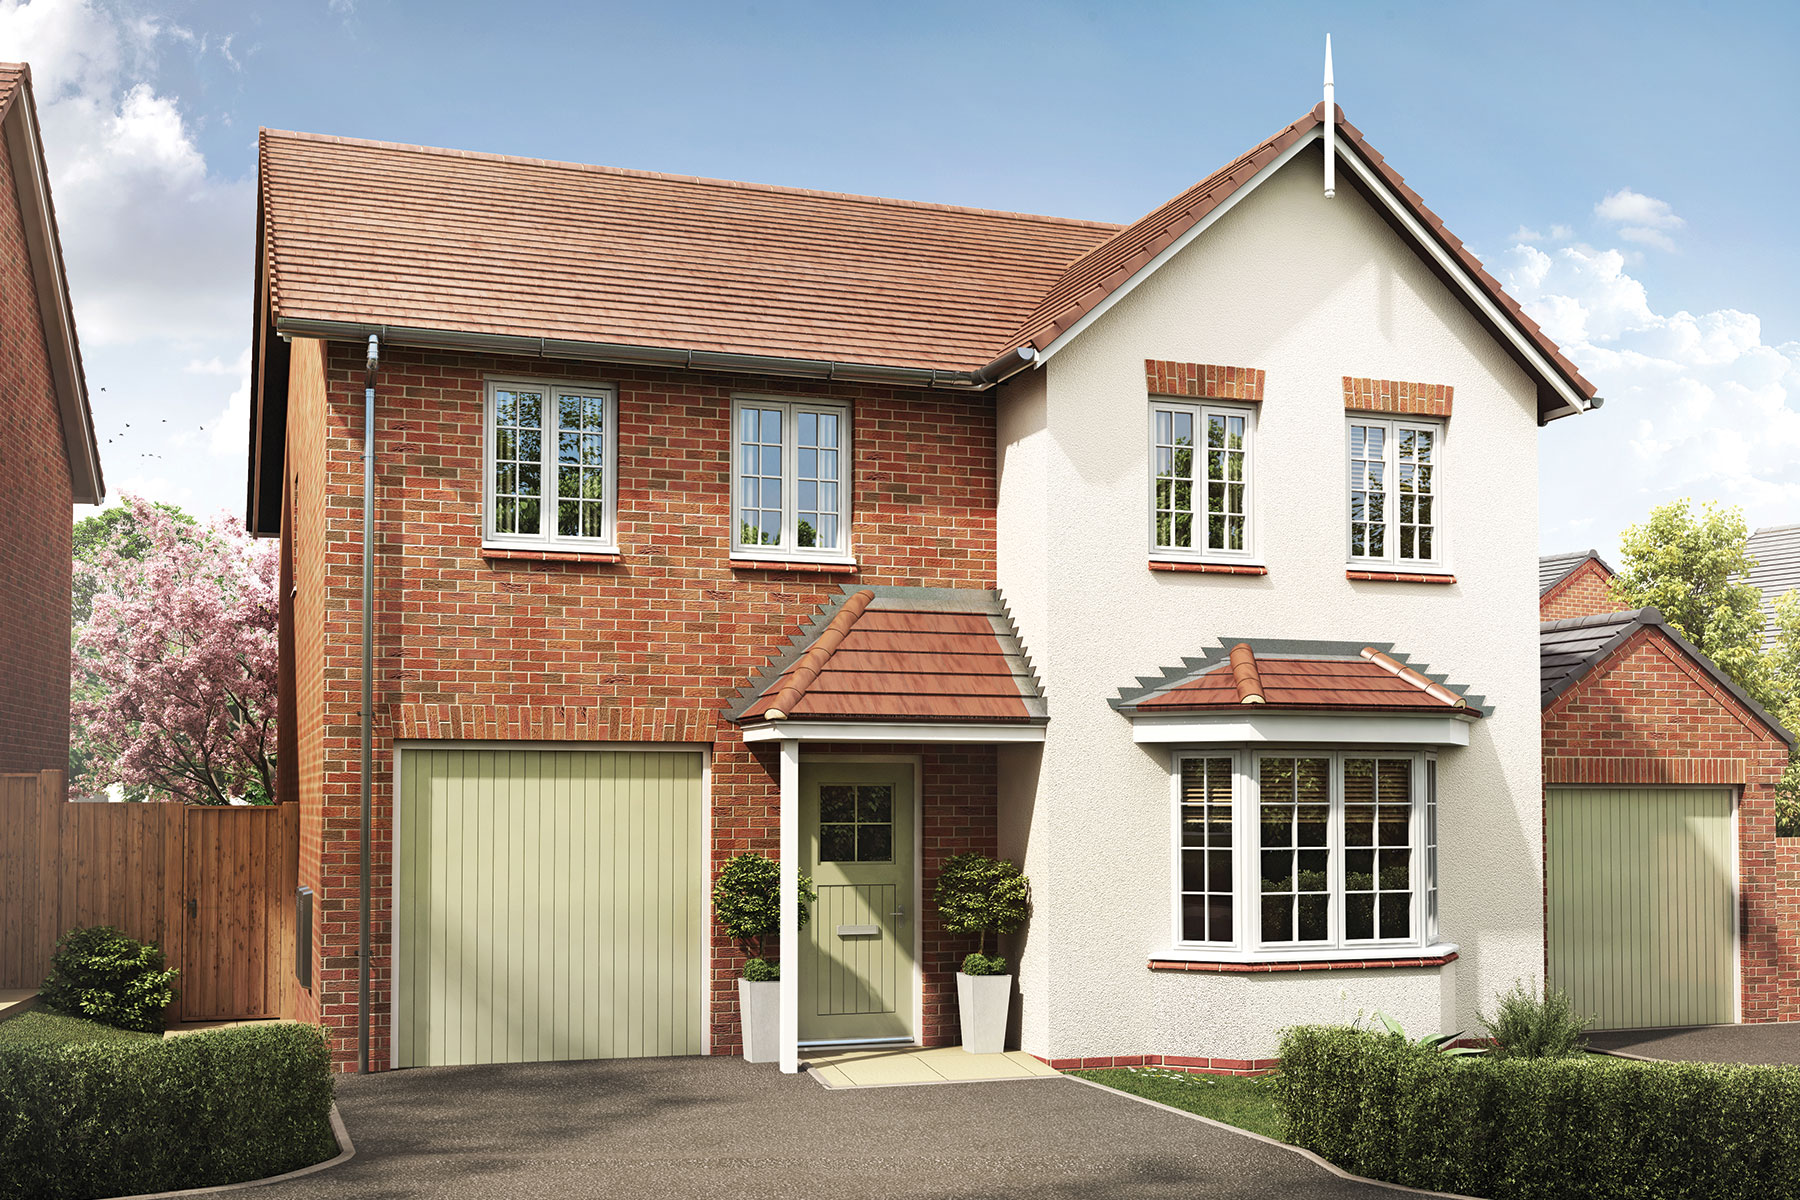 PD411-Haddenham-R2-plot-67-Rural-Edge-Variant-V2